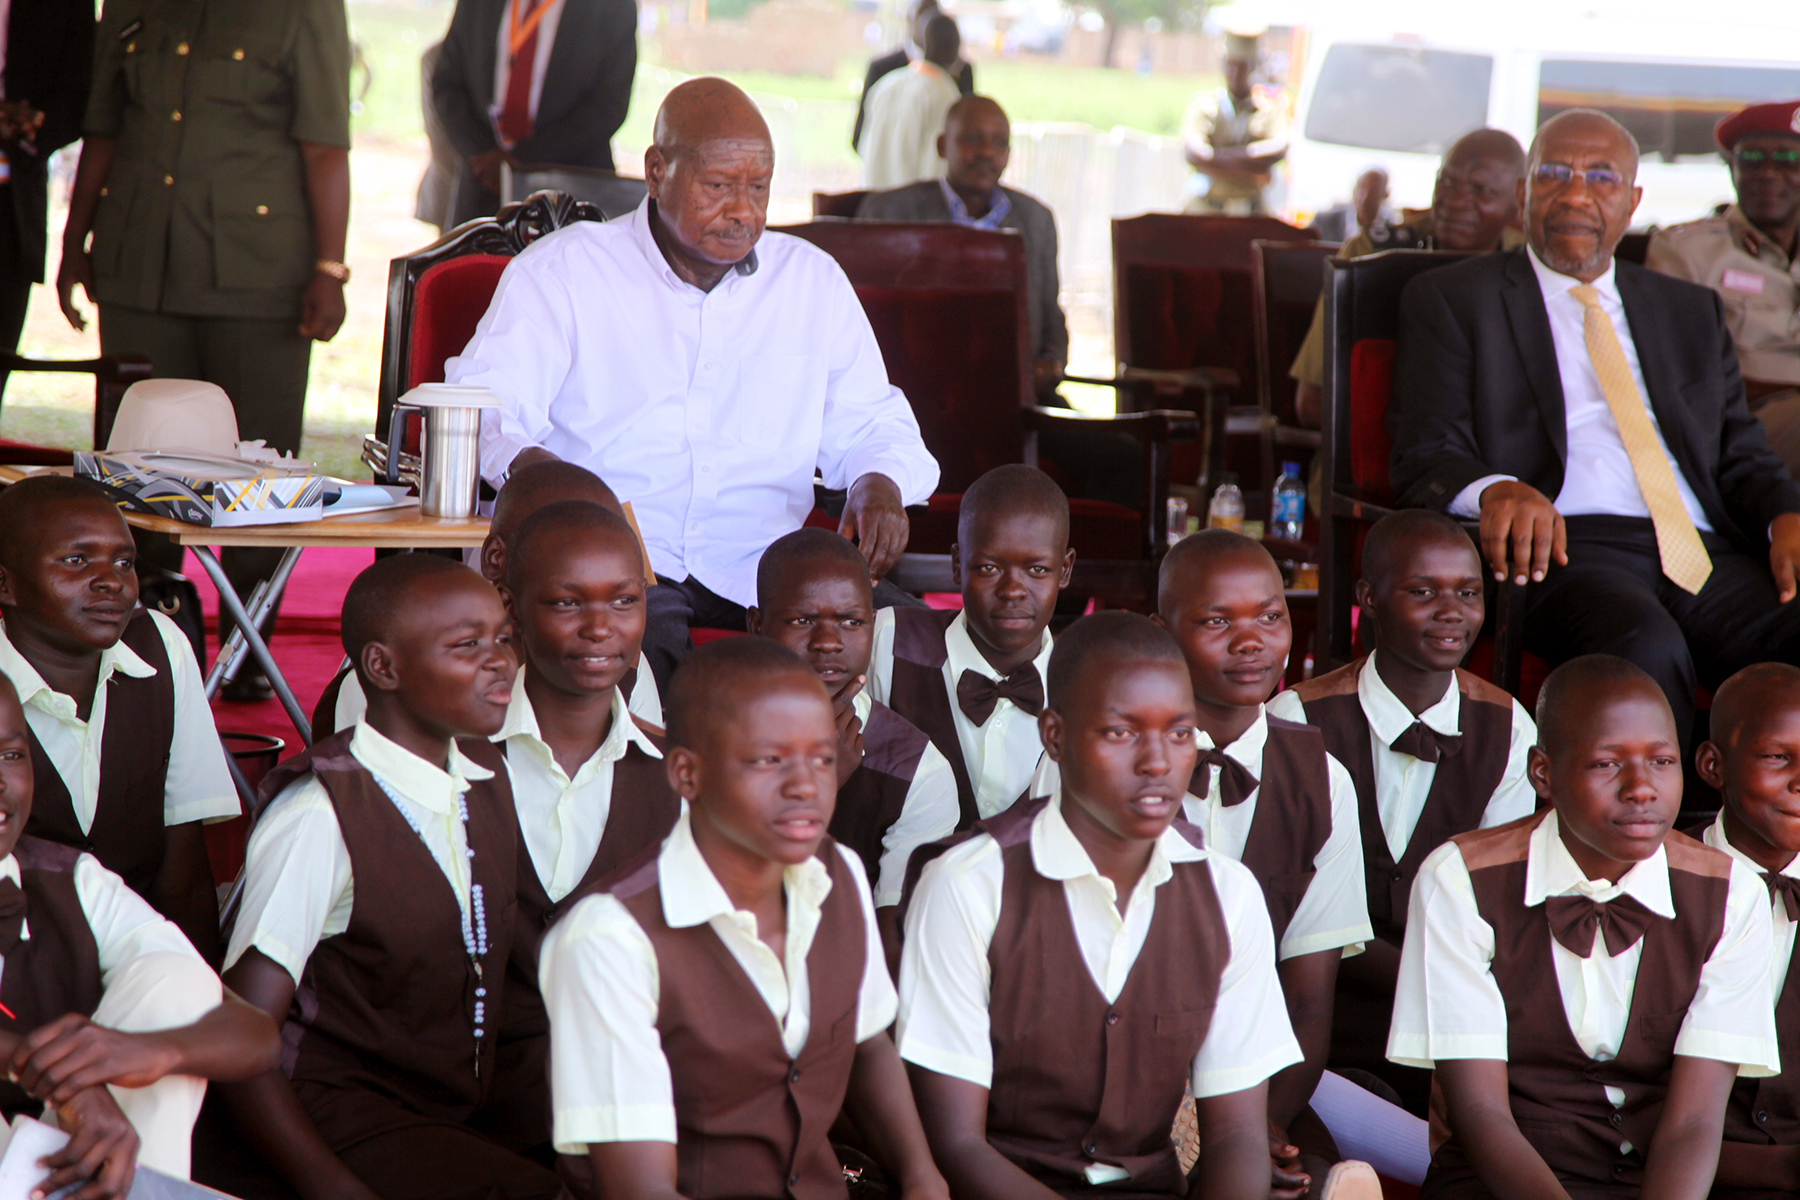 H.E Yoweri Museveni pose with school children during the International labor day 1st May 2019 at Agago district